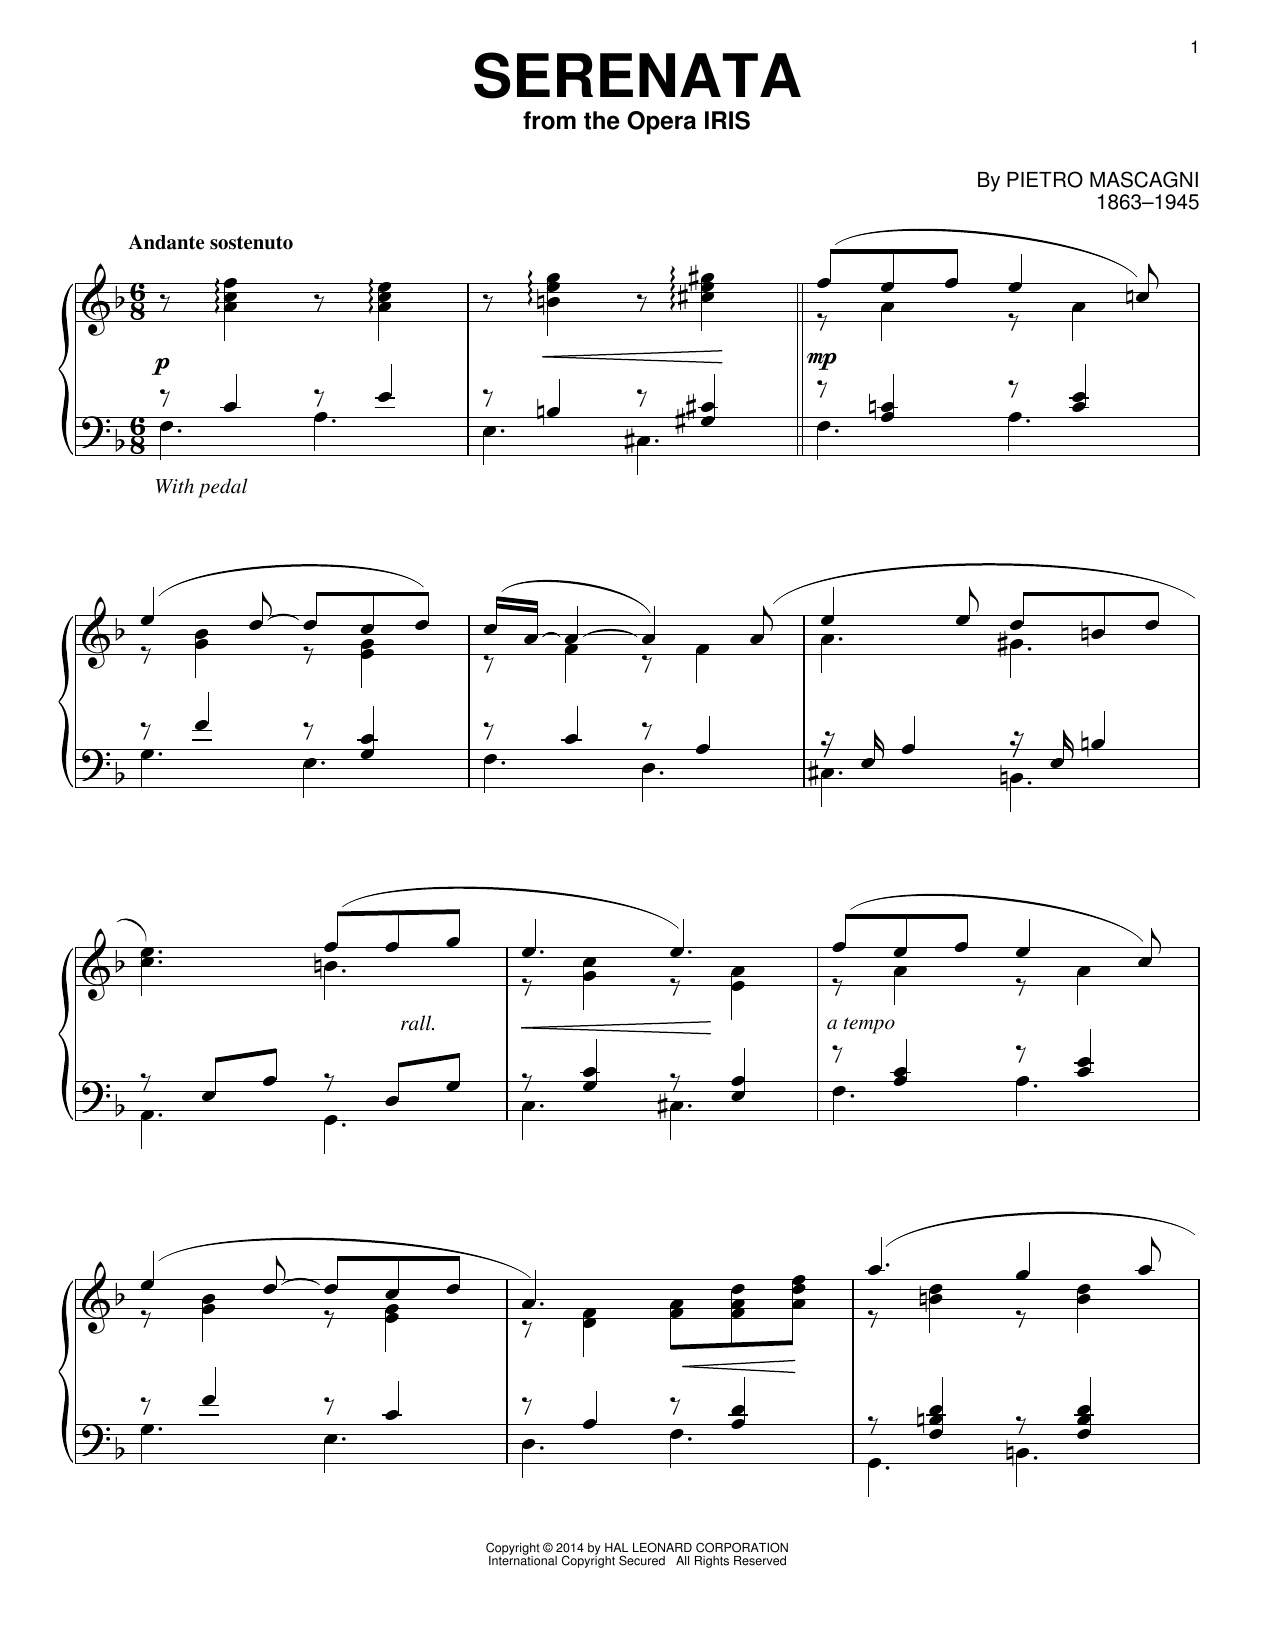 Pietro Mascagni Serenata sheet music notes and chords. Download Printable PDF.